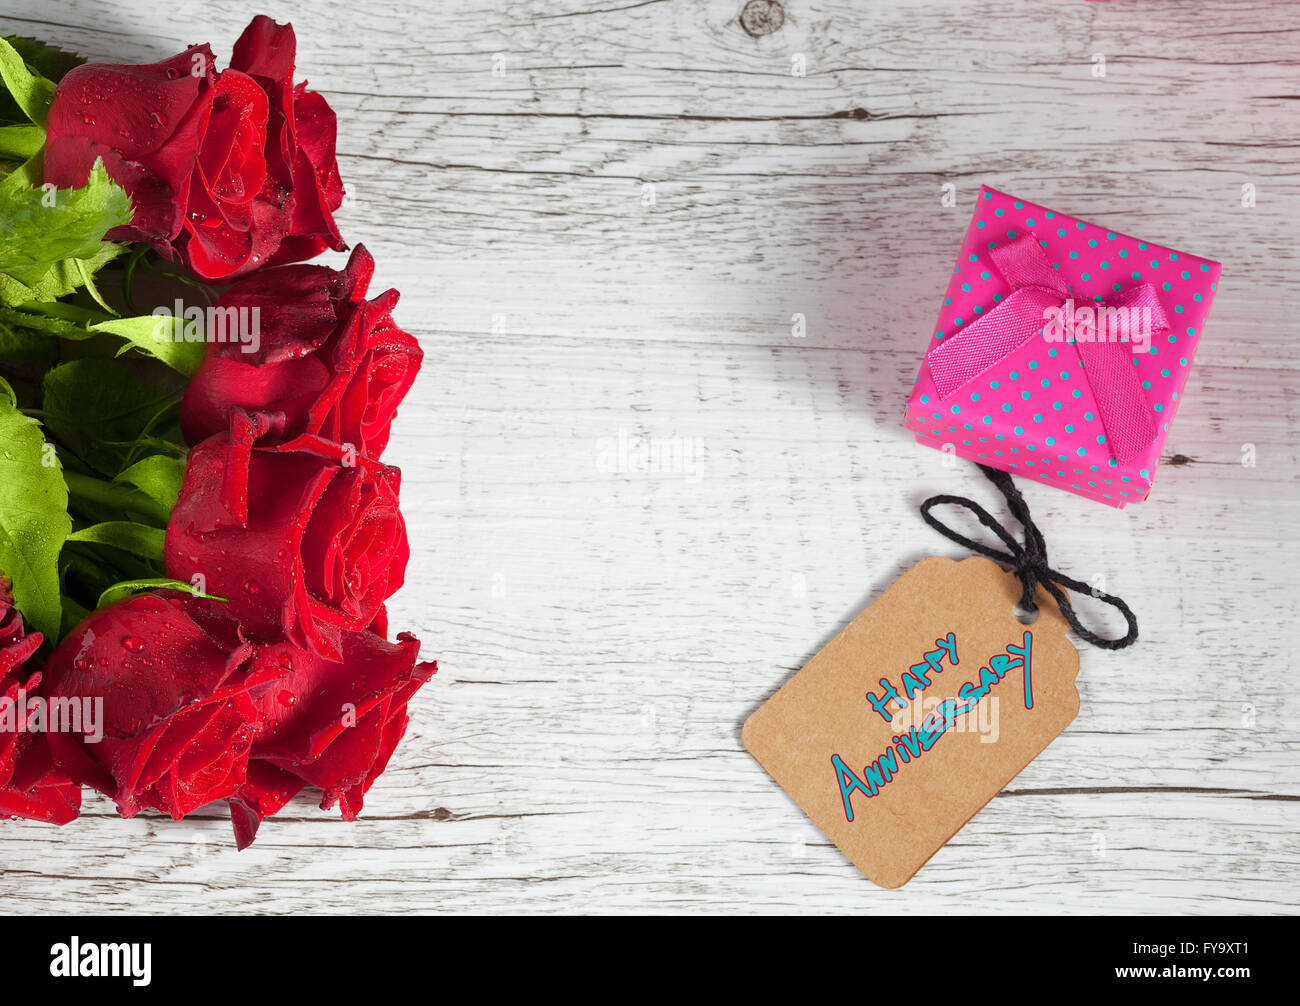 Happy Anniversary text with small gift box and red roses on white rustic wooden table. Stock Photo